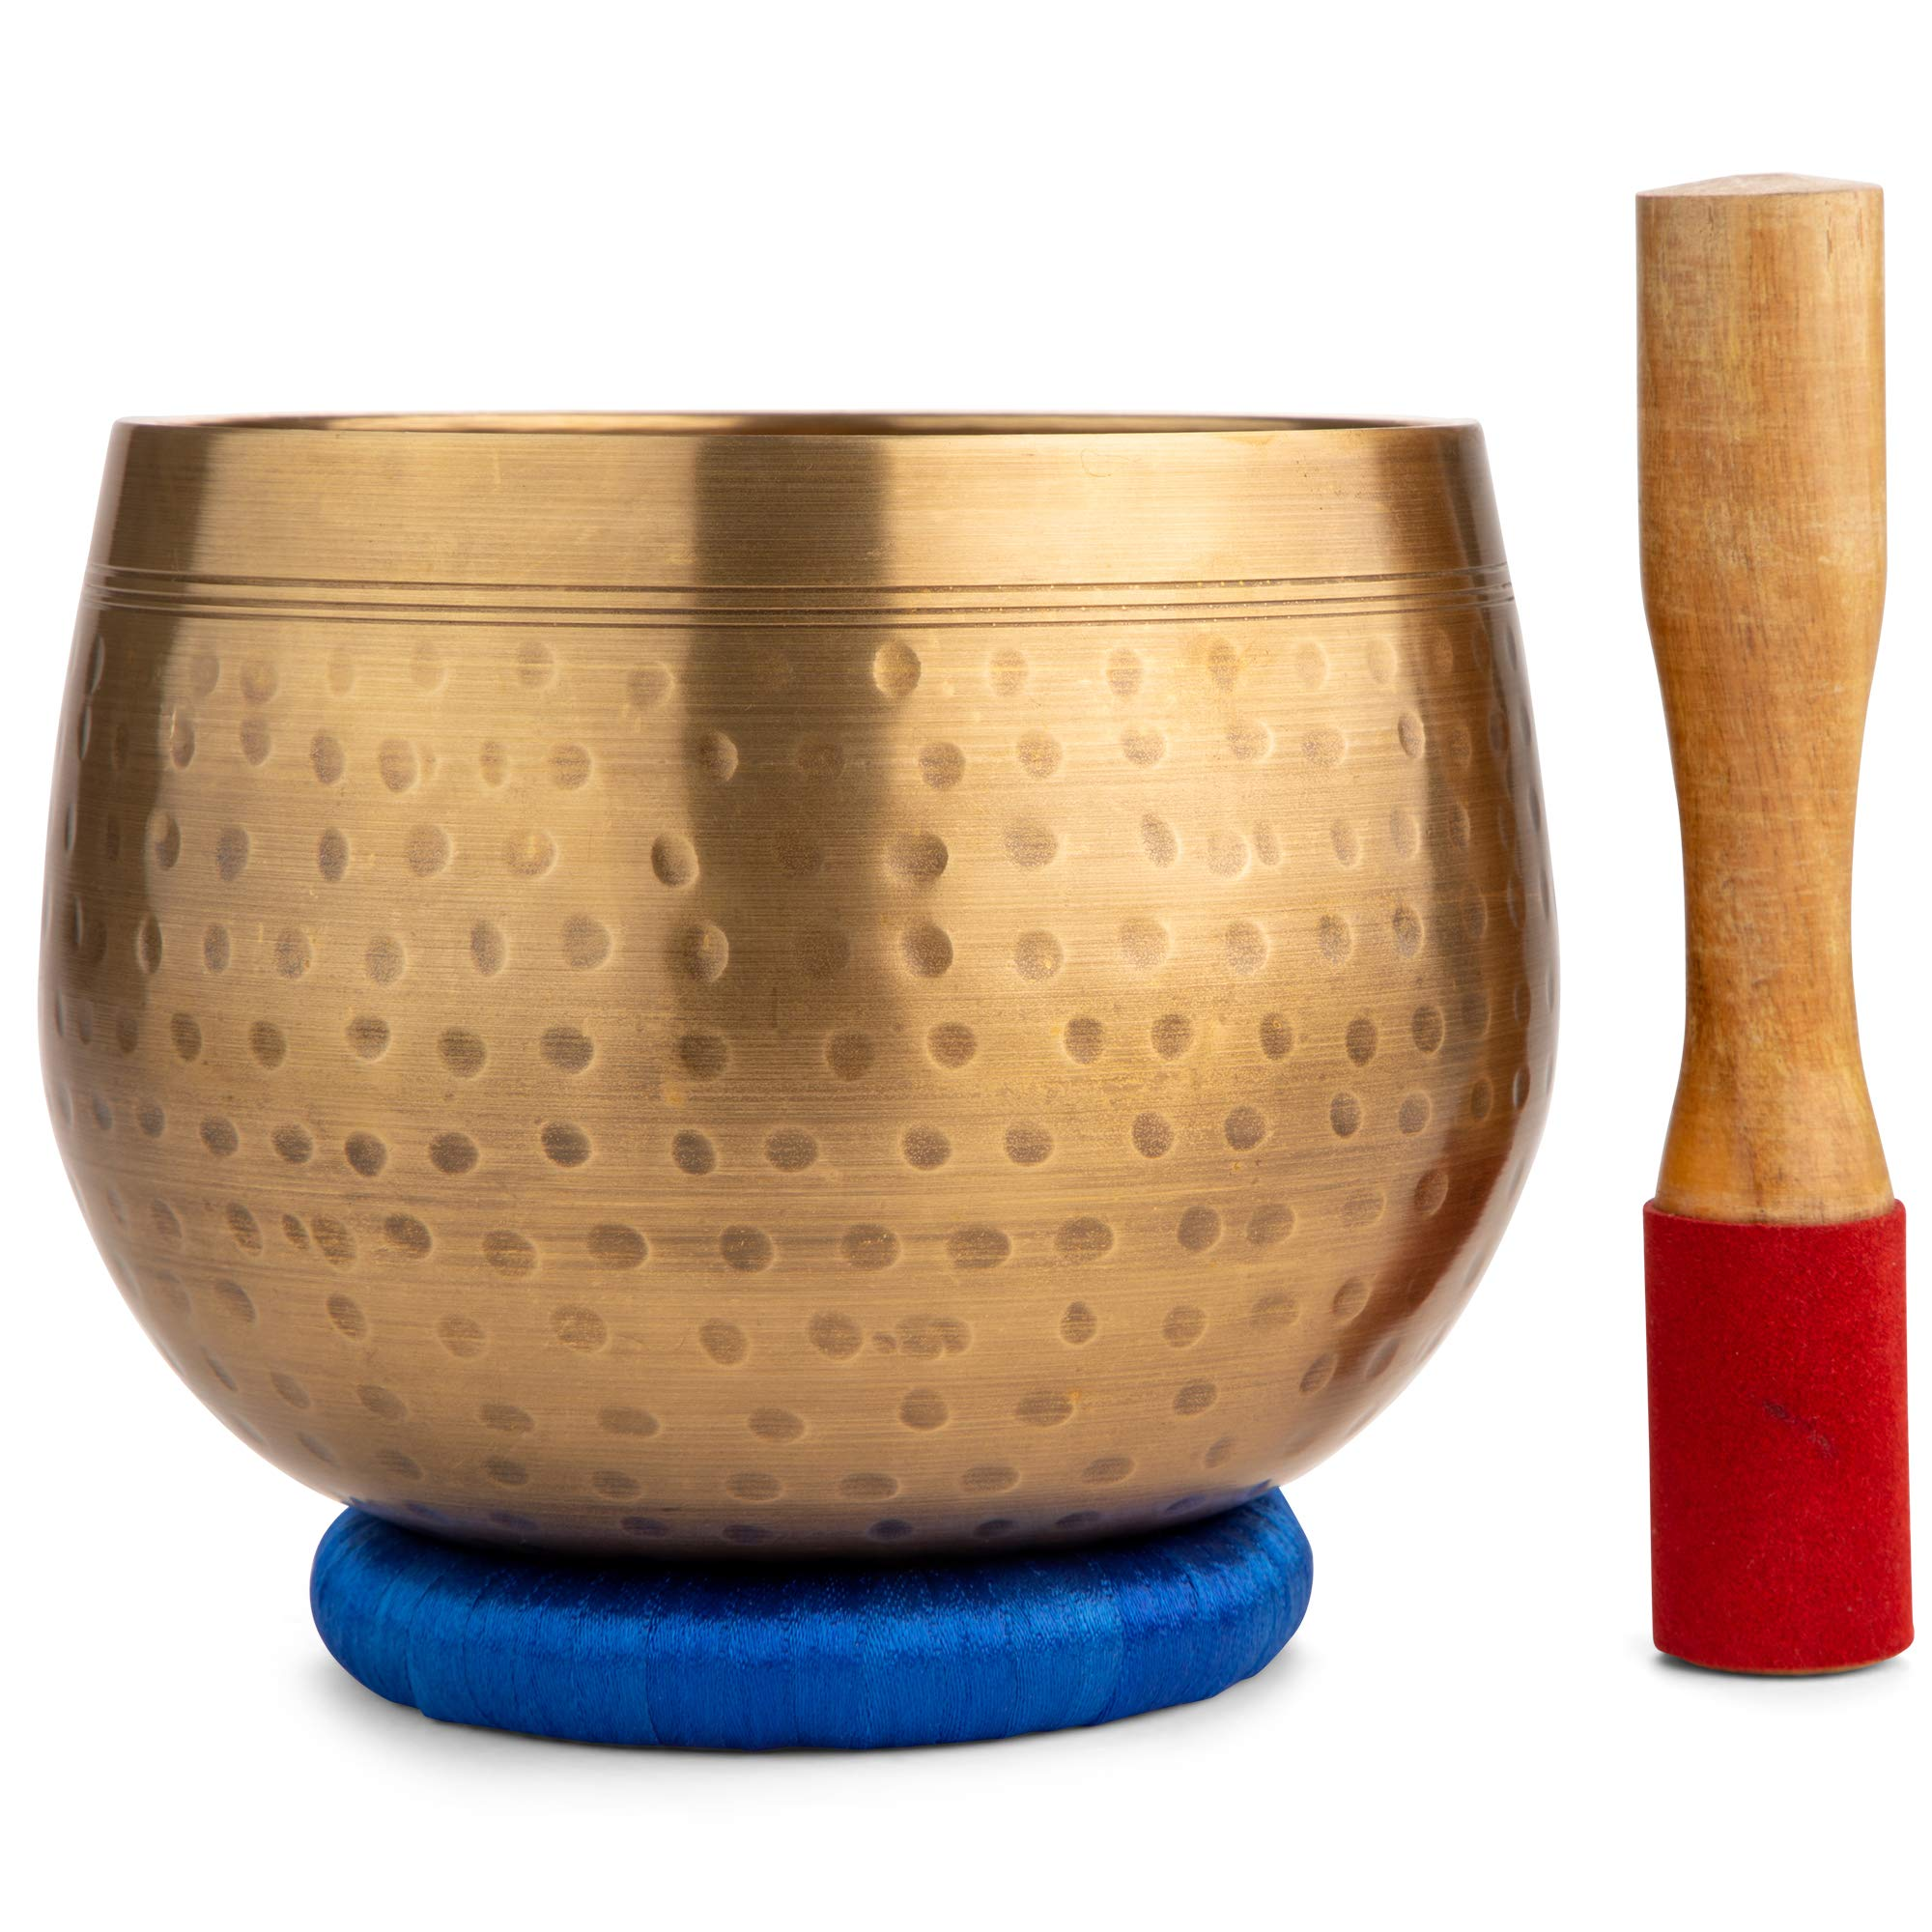 Meditative Brass Singing Bowl with Mallet and Cushion  -Tibetan Sound Bowls for Energy Healing, Mindfulness, Grounding, Zen, Meditation  -  Exquisite, Unique Home Decor and Gift Sets by Telsha (Image #2)